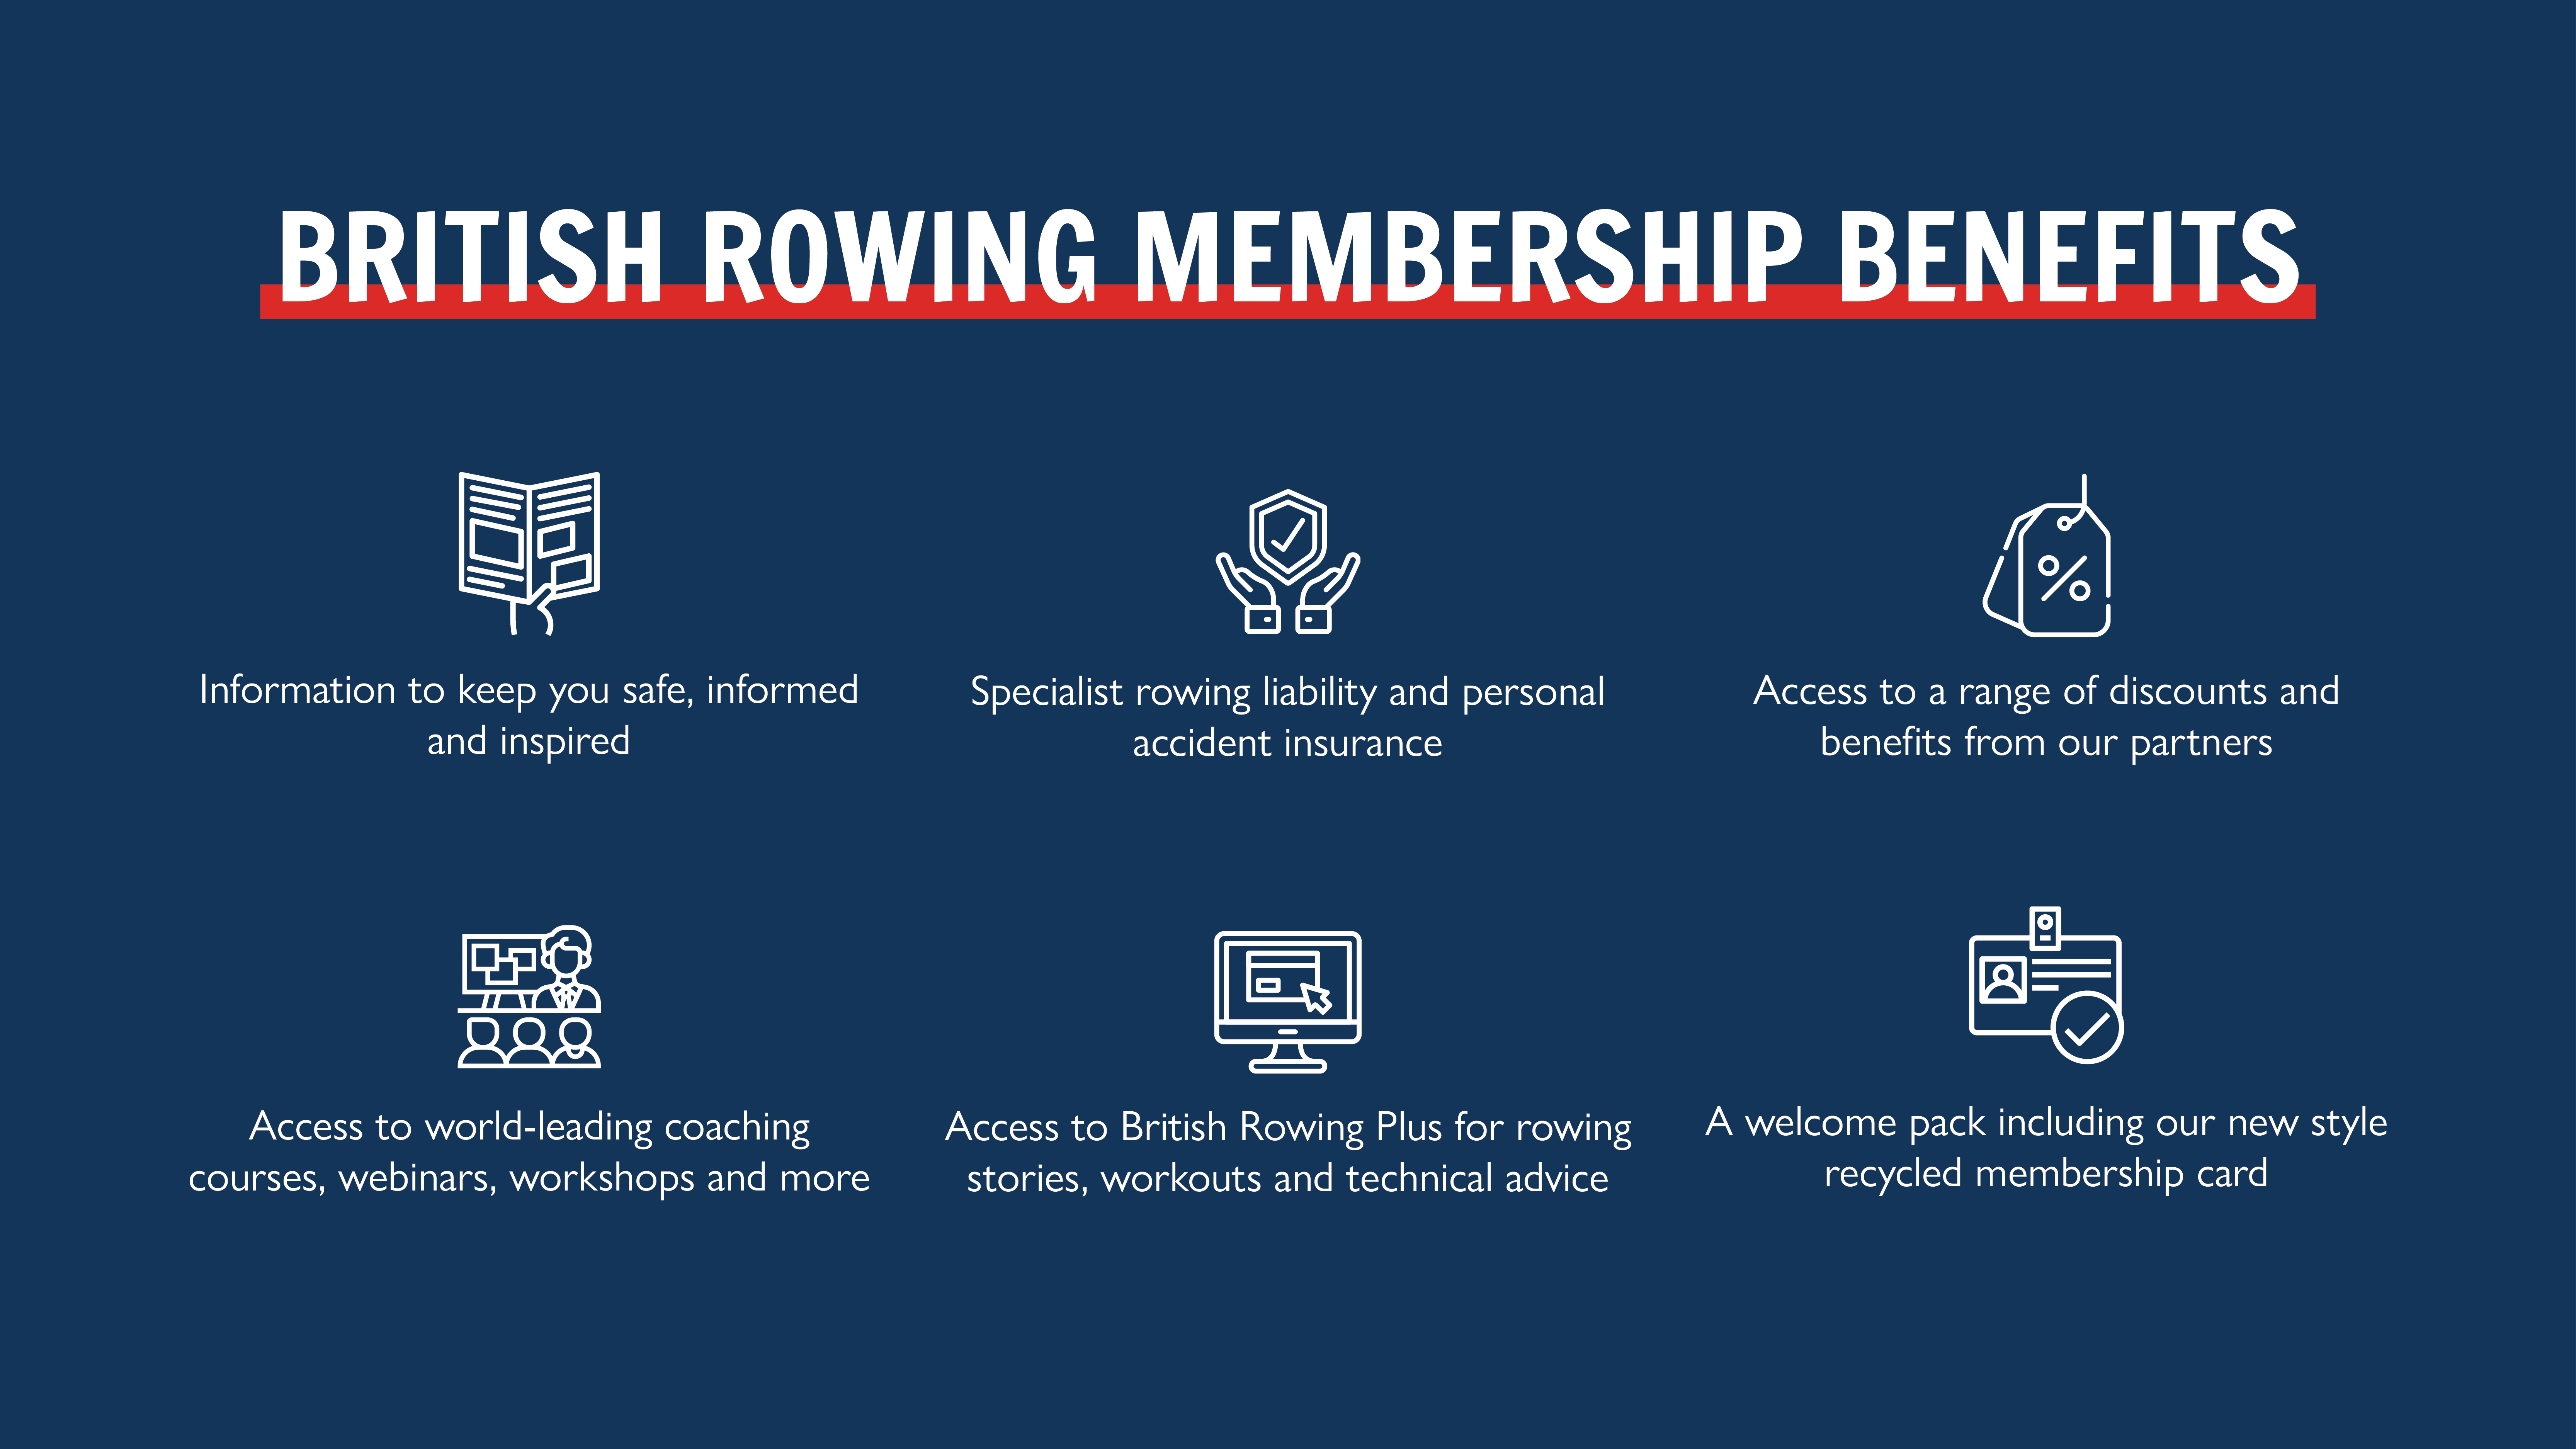 British rowing membership benefits - Benefit 1, information to keep you safe, informed and inspired. Benefit 2, specialist rowing liability and personal accident insurance. Benefit 3, access to a range of discounts and benefits from our partners. Benefit 4, access to world leading coaching courses, webinars, workshops and more. Benefit 5, access to British Rowing Plus for rowing stories, workouts and technical advice. Benefit 6, a welcome pack including our new style recycled membership card.